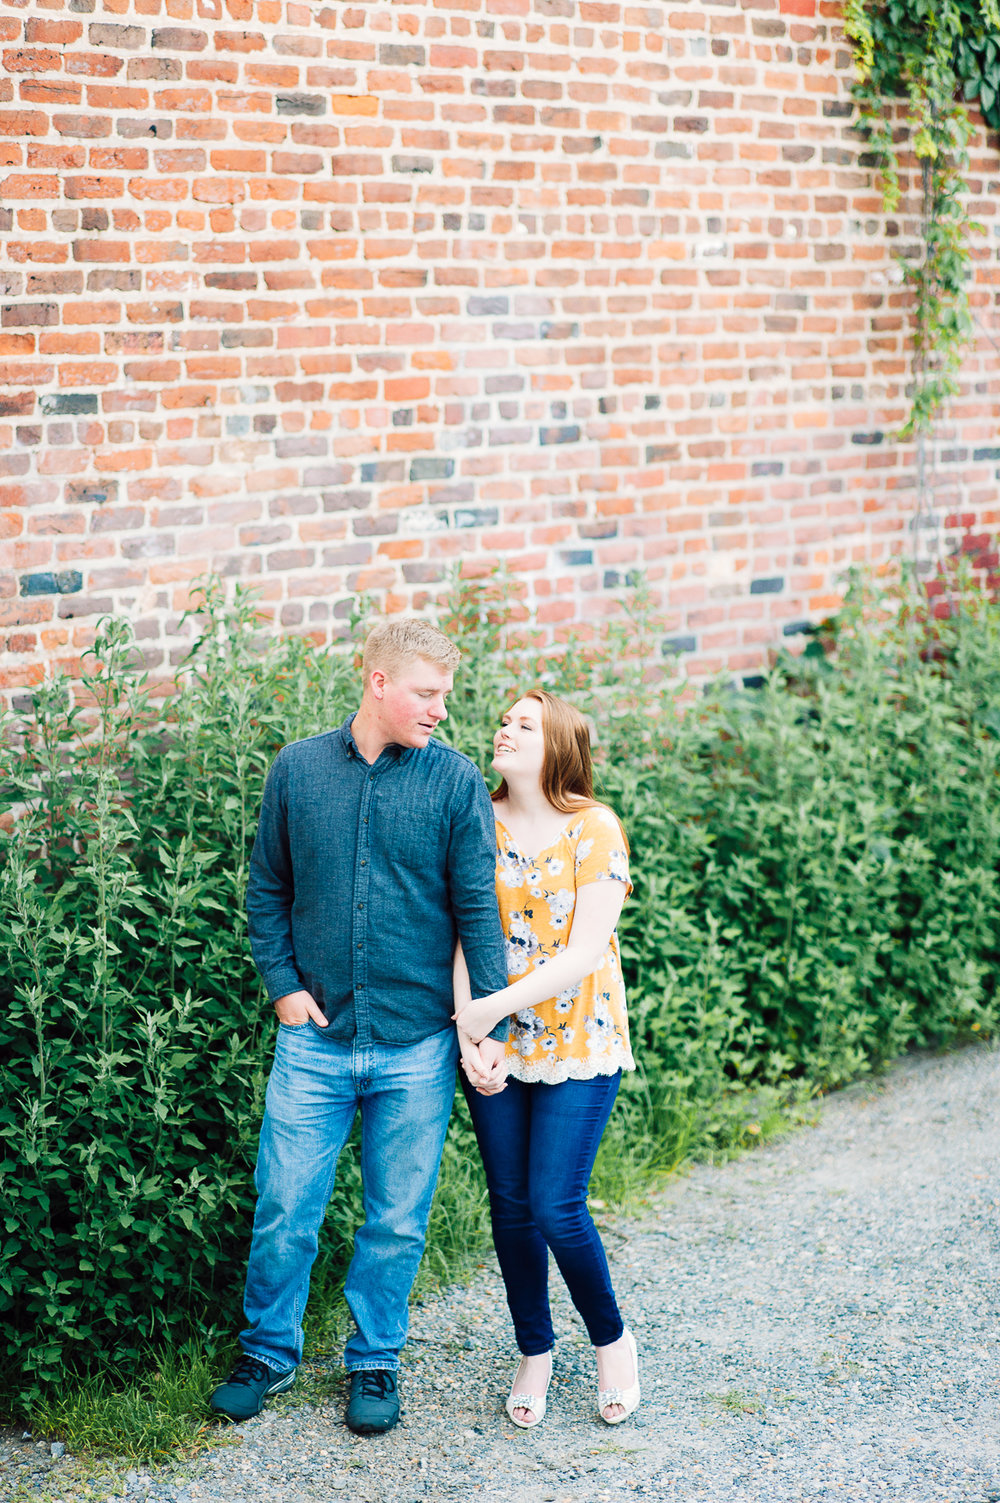 engagement_downtown_fredericksburg_virginiaweddingphotographer_youseephotography_ErinBrad (40).jpg